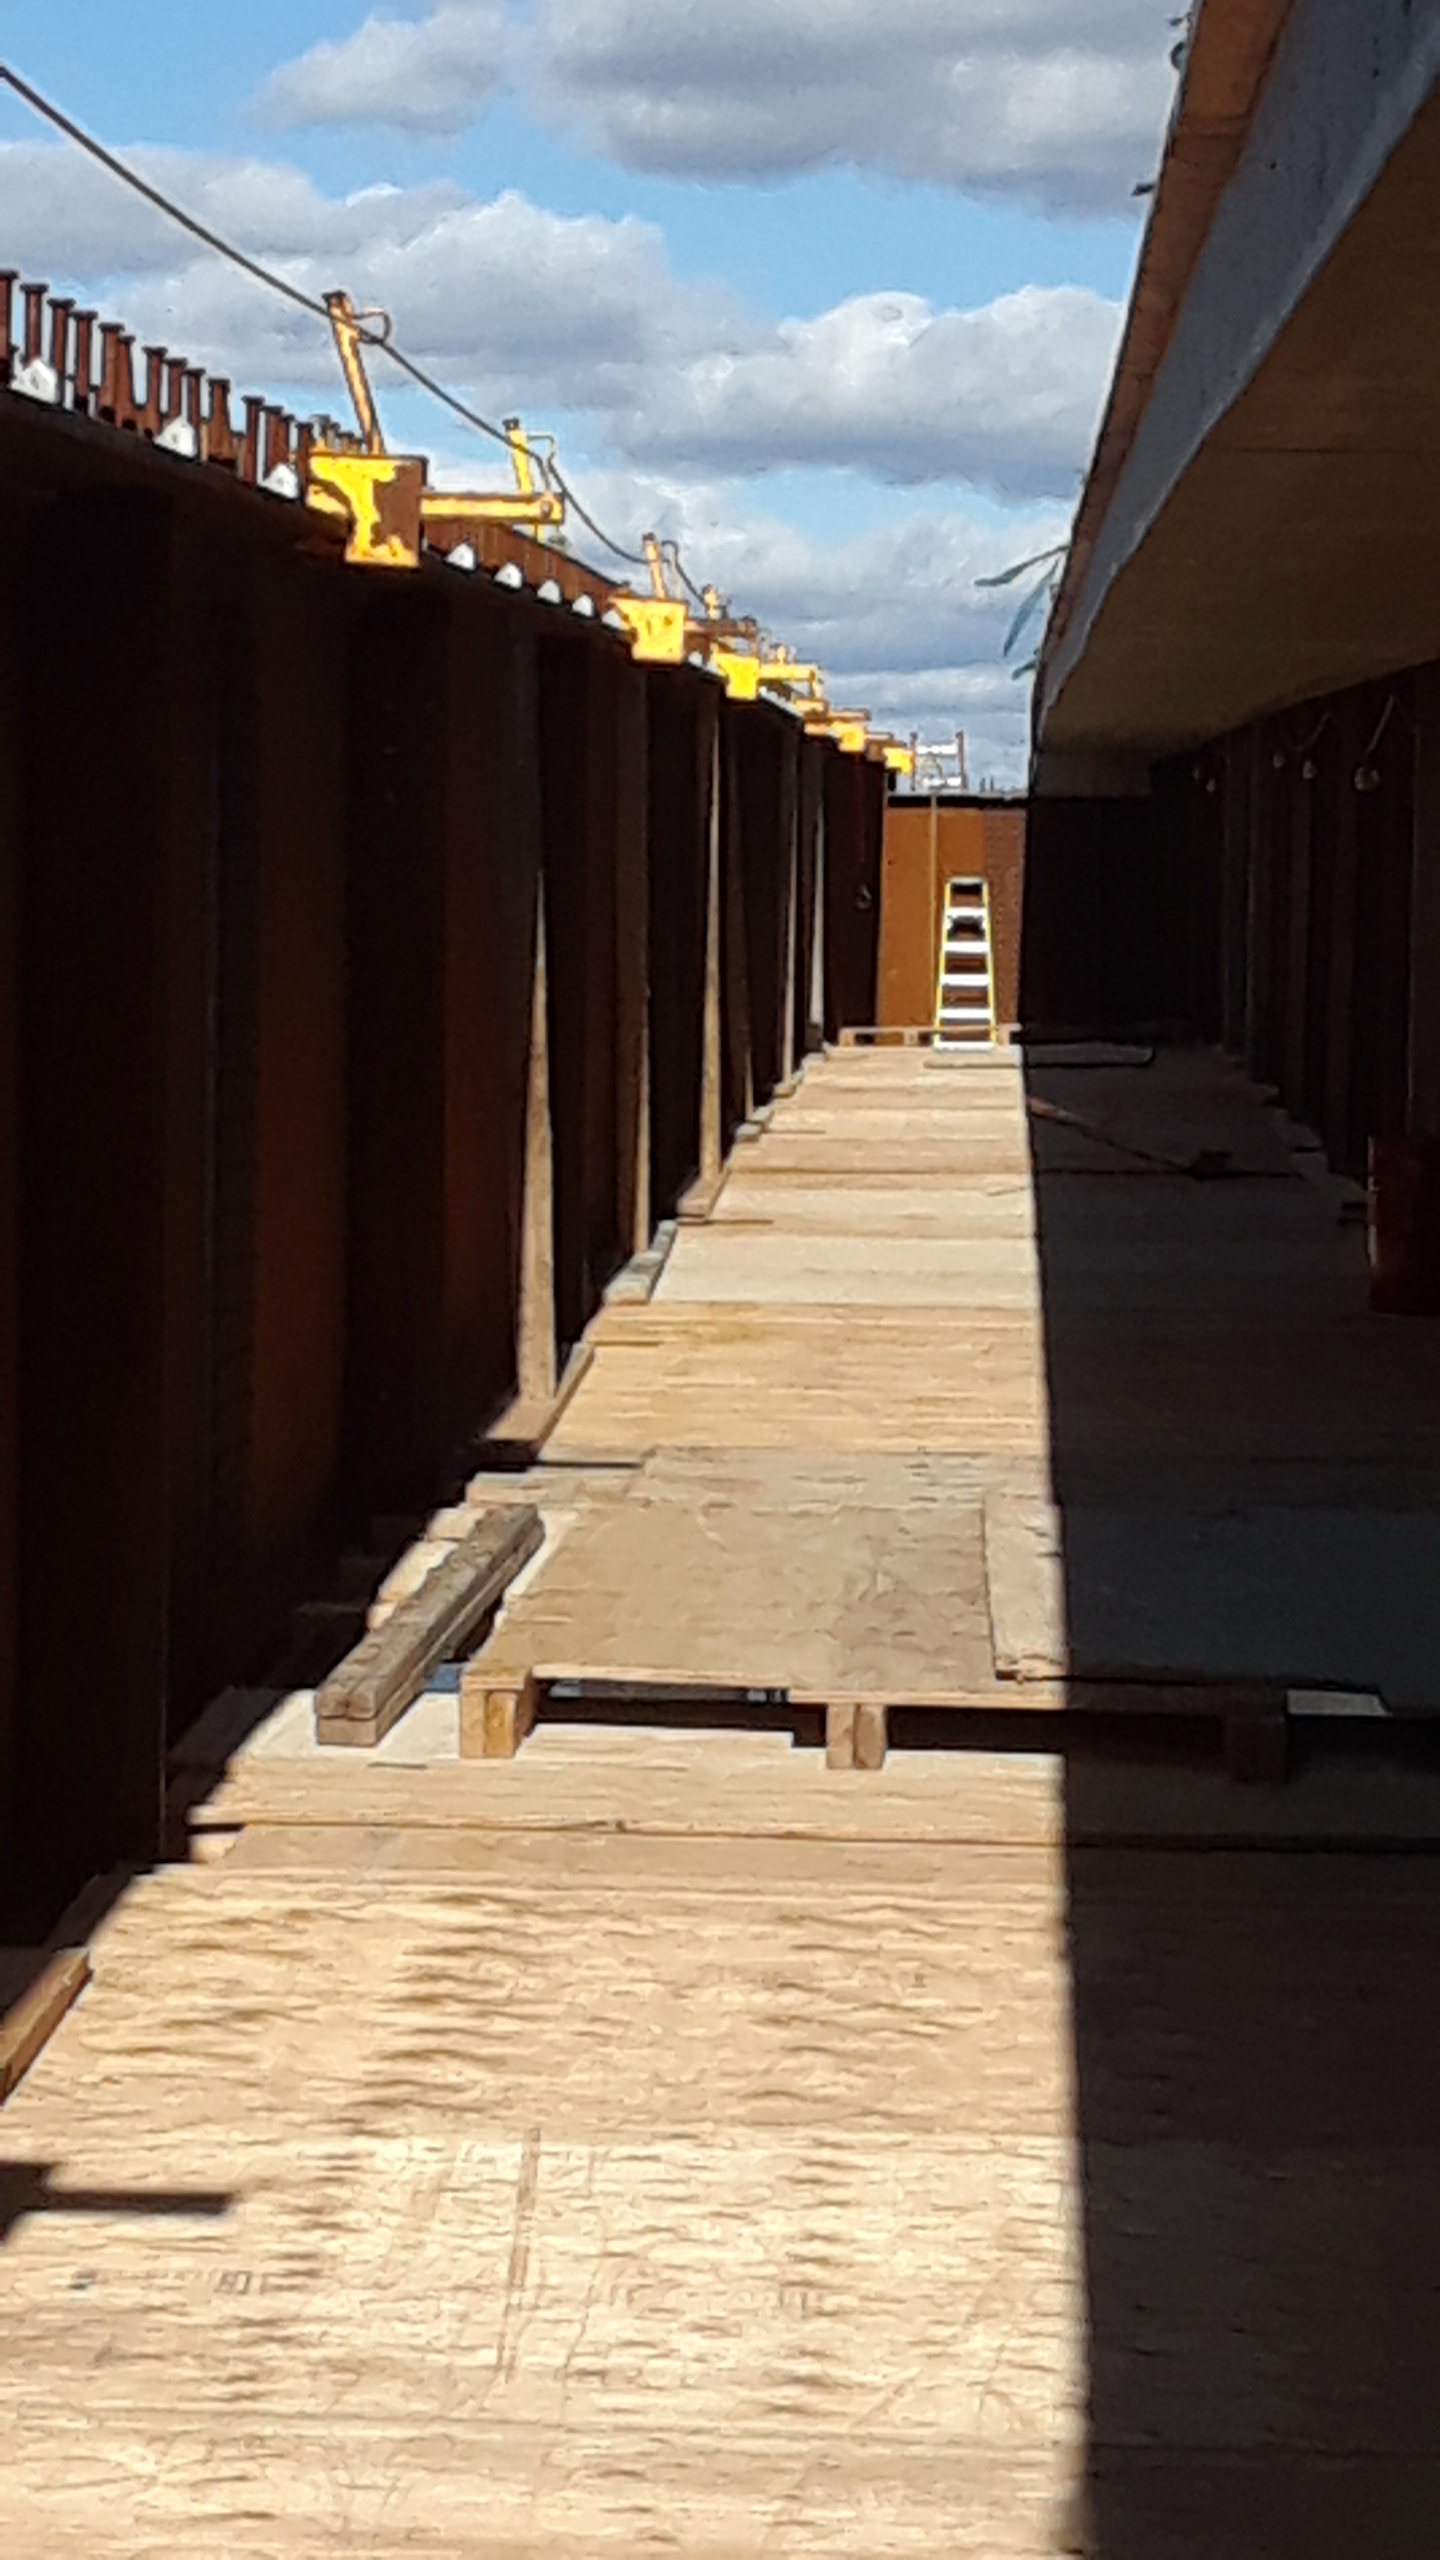 False decking for access between new girders